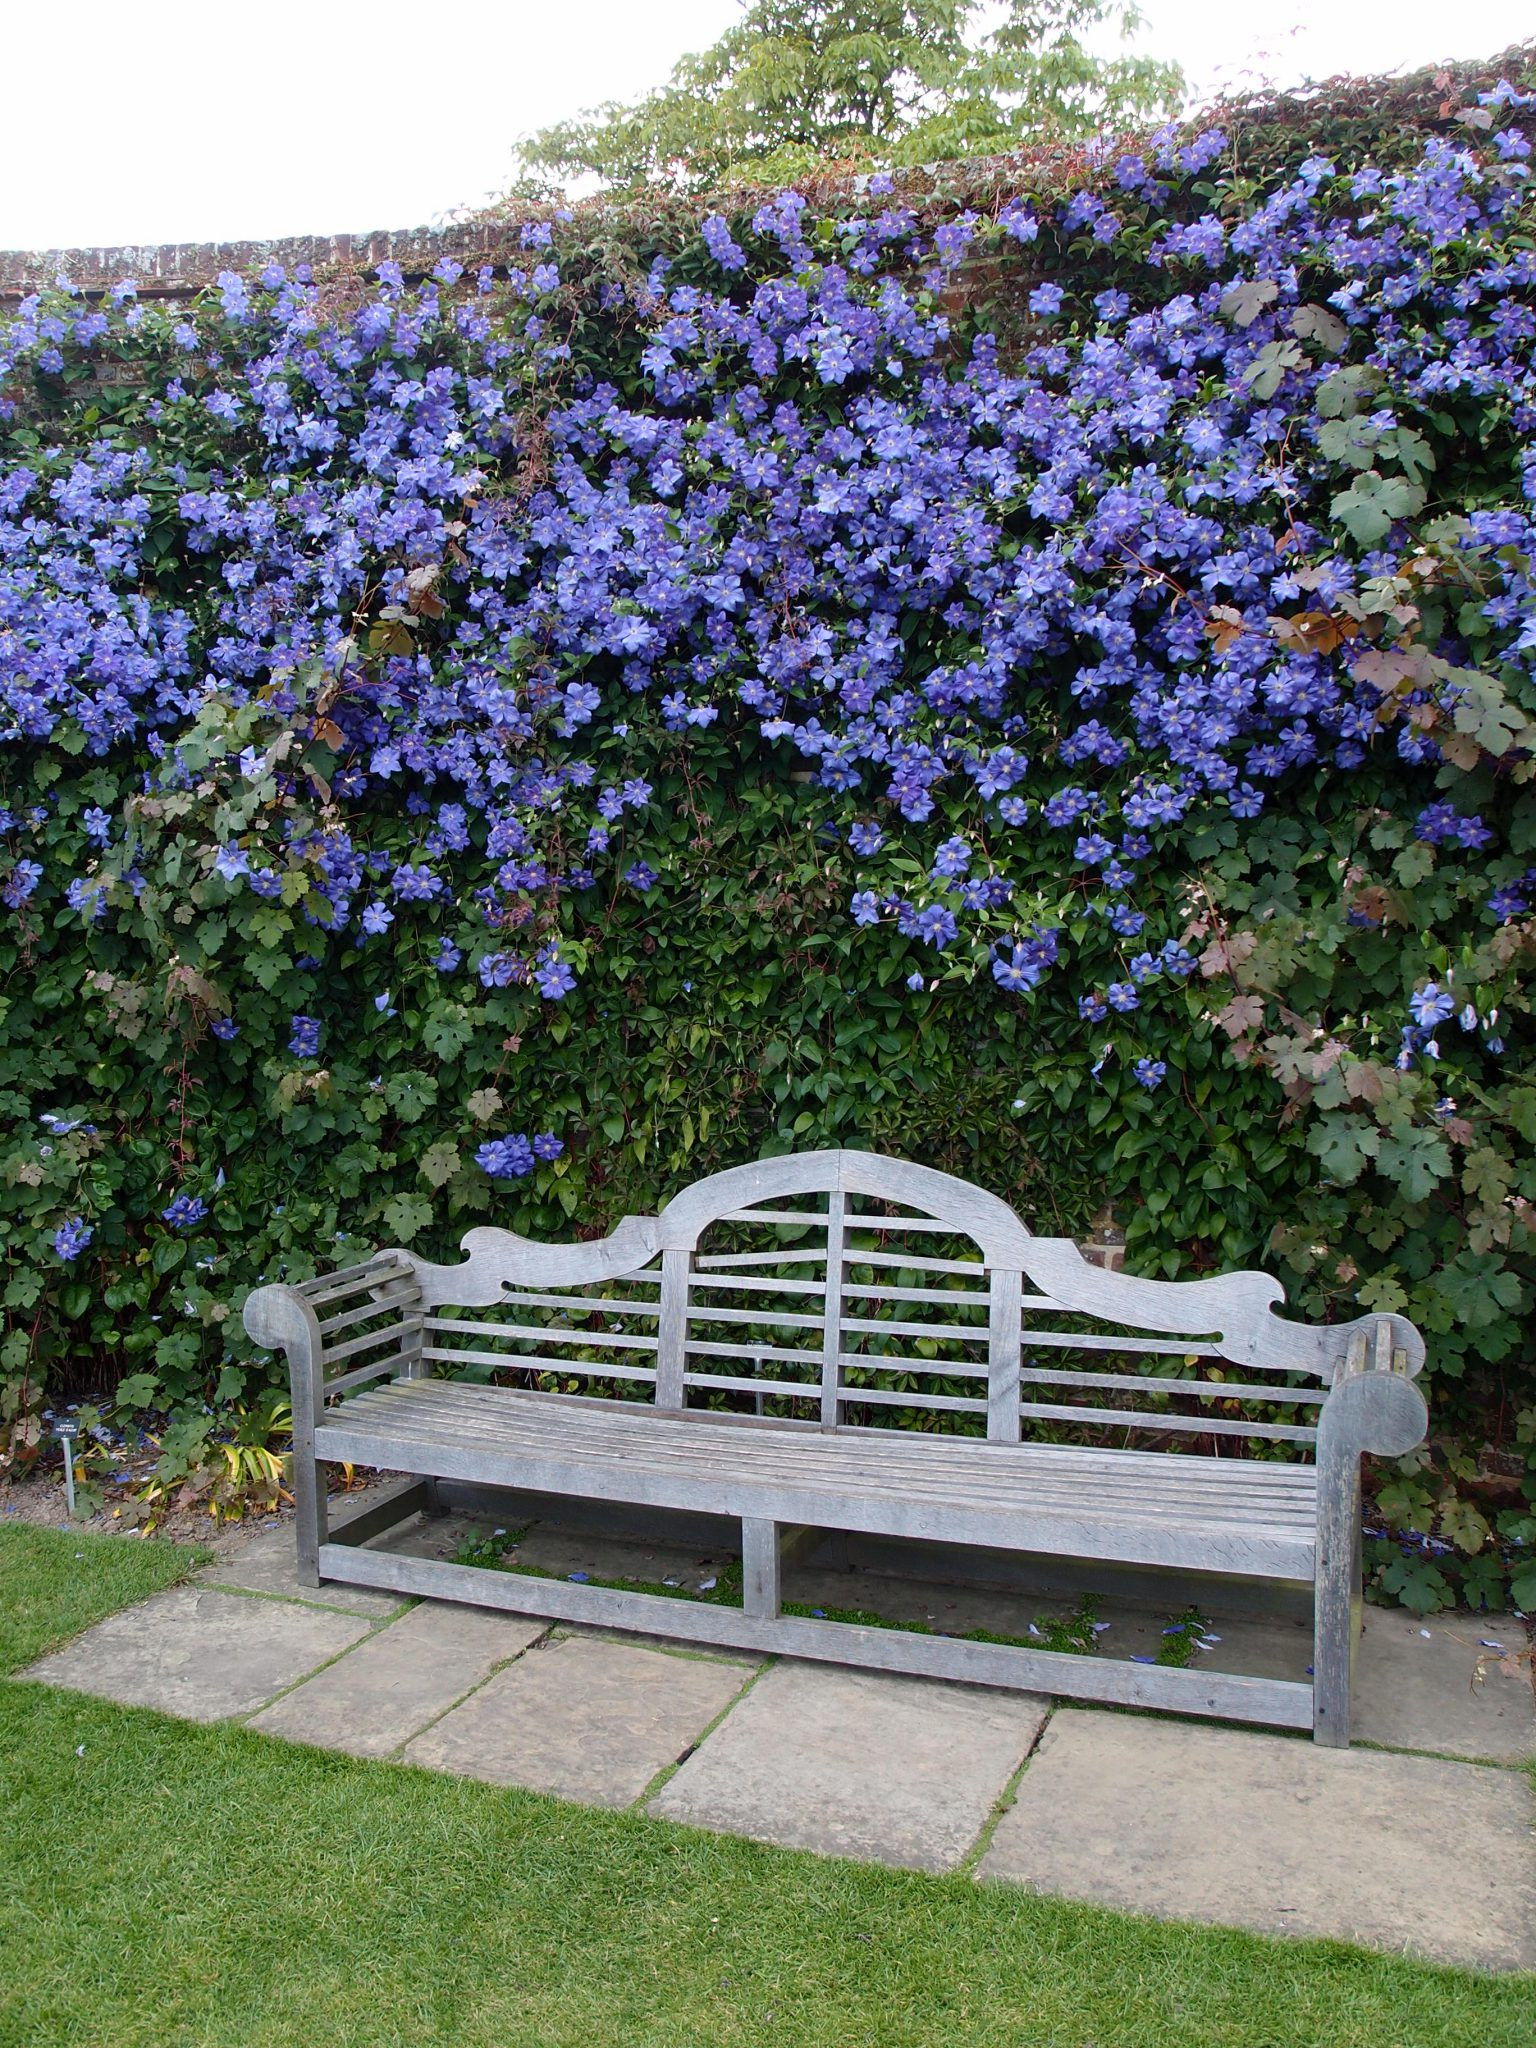 Rose Garden Bench, during a rare moment when it's not occupied.